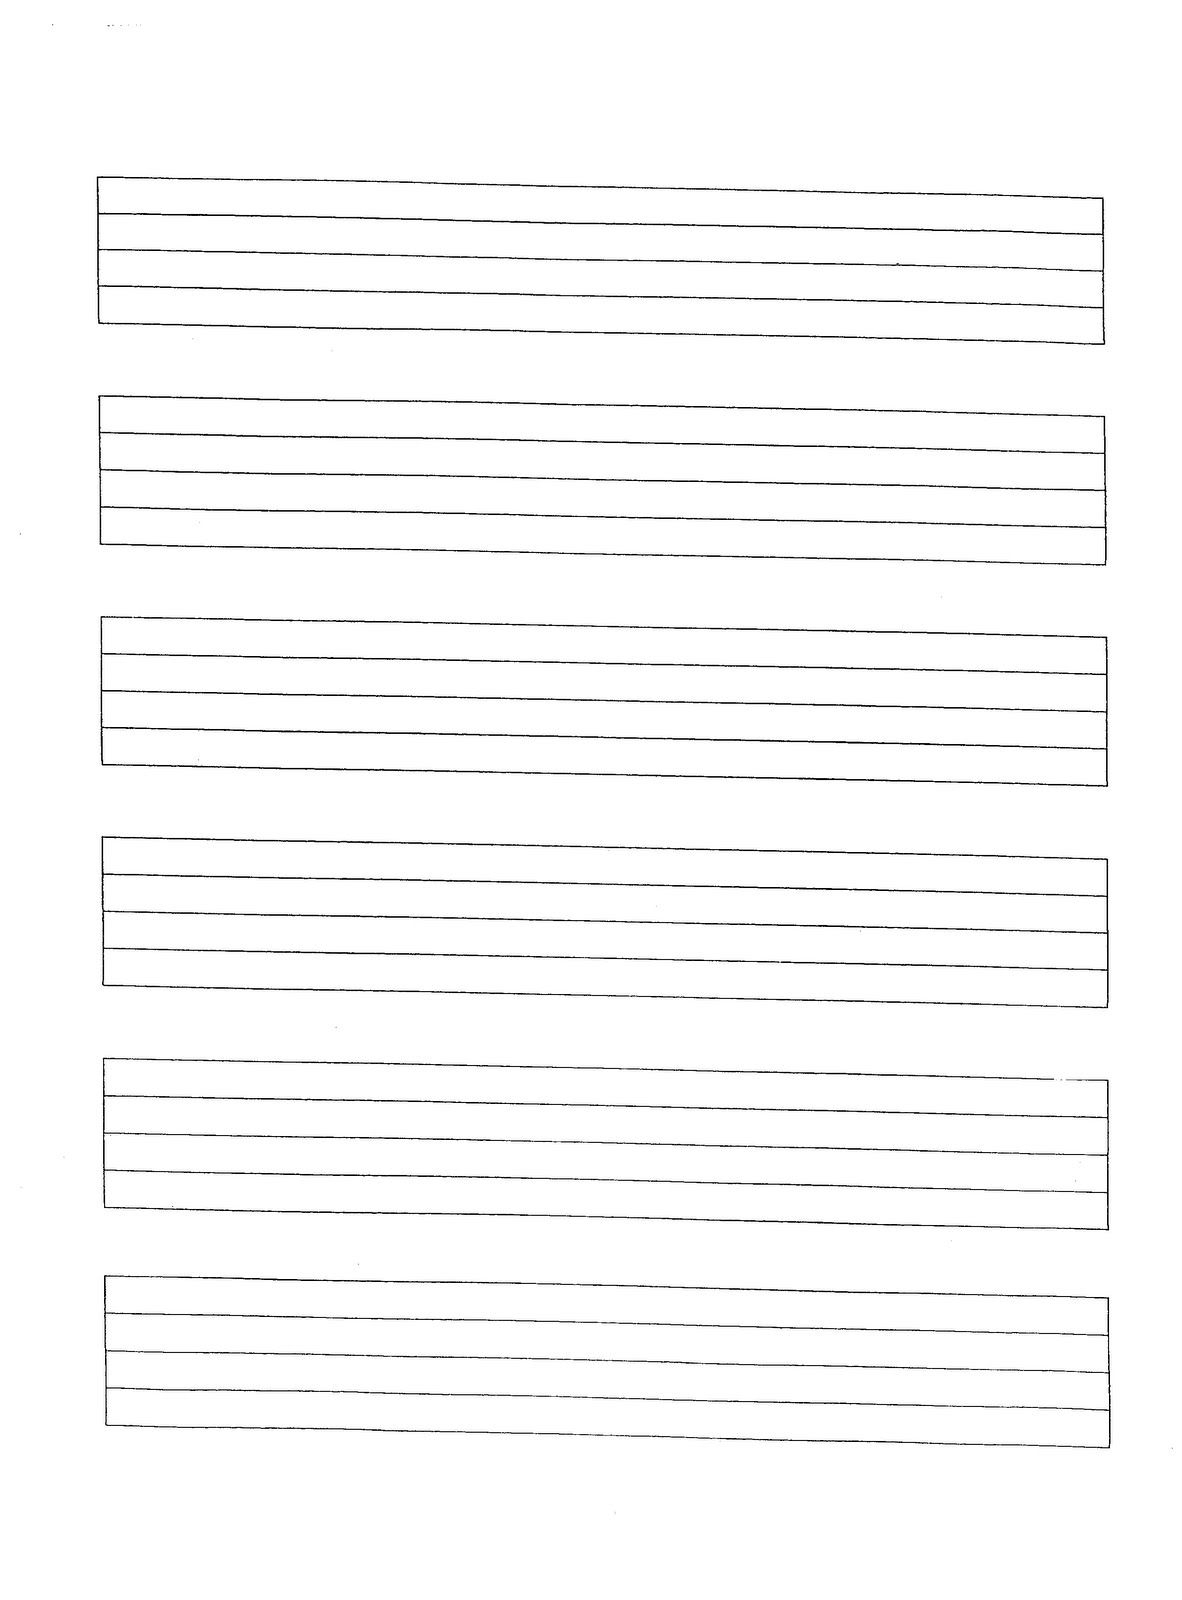 Print At 150% - Staff Paper | Miss Jacobson's Music: Manuscript - Free Printable Staff Paper